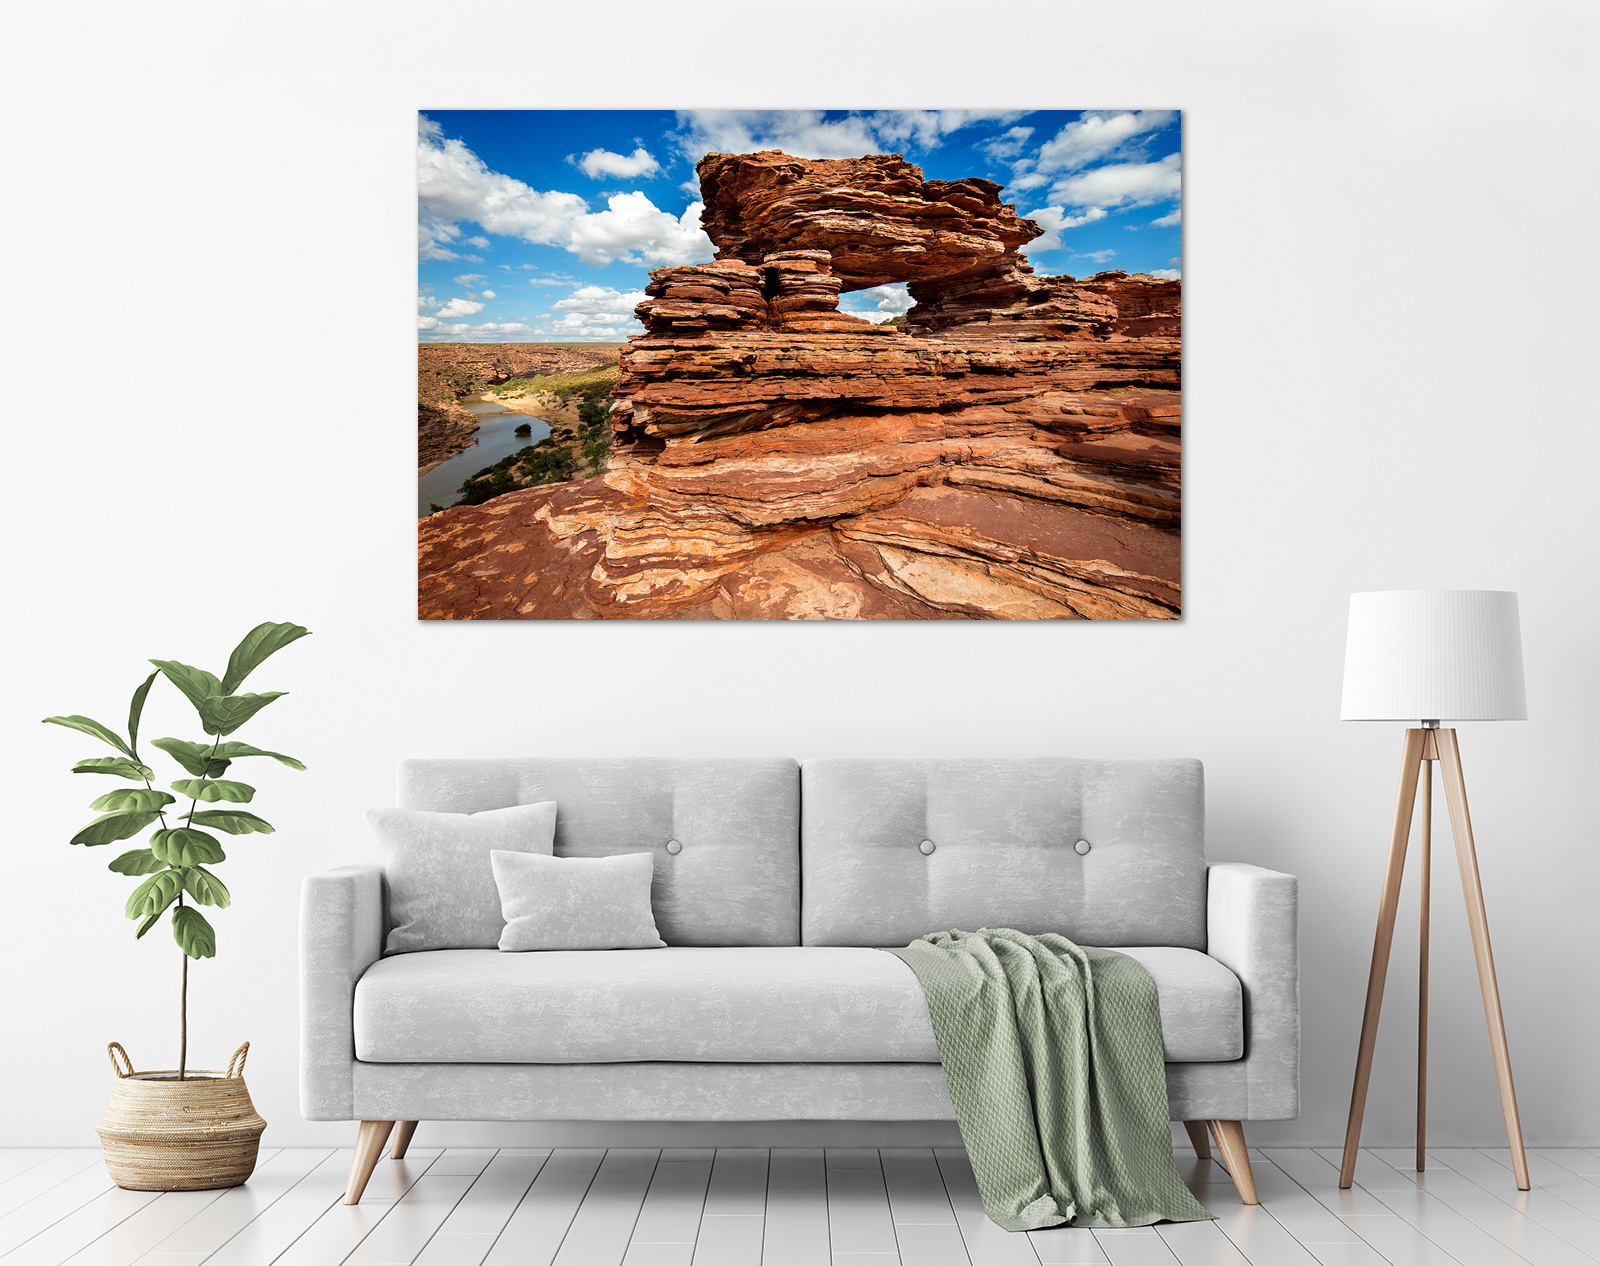 Jason Mazur - 'Nature's Window, Kalbarri 006' in a room